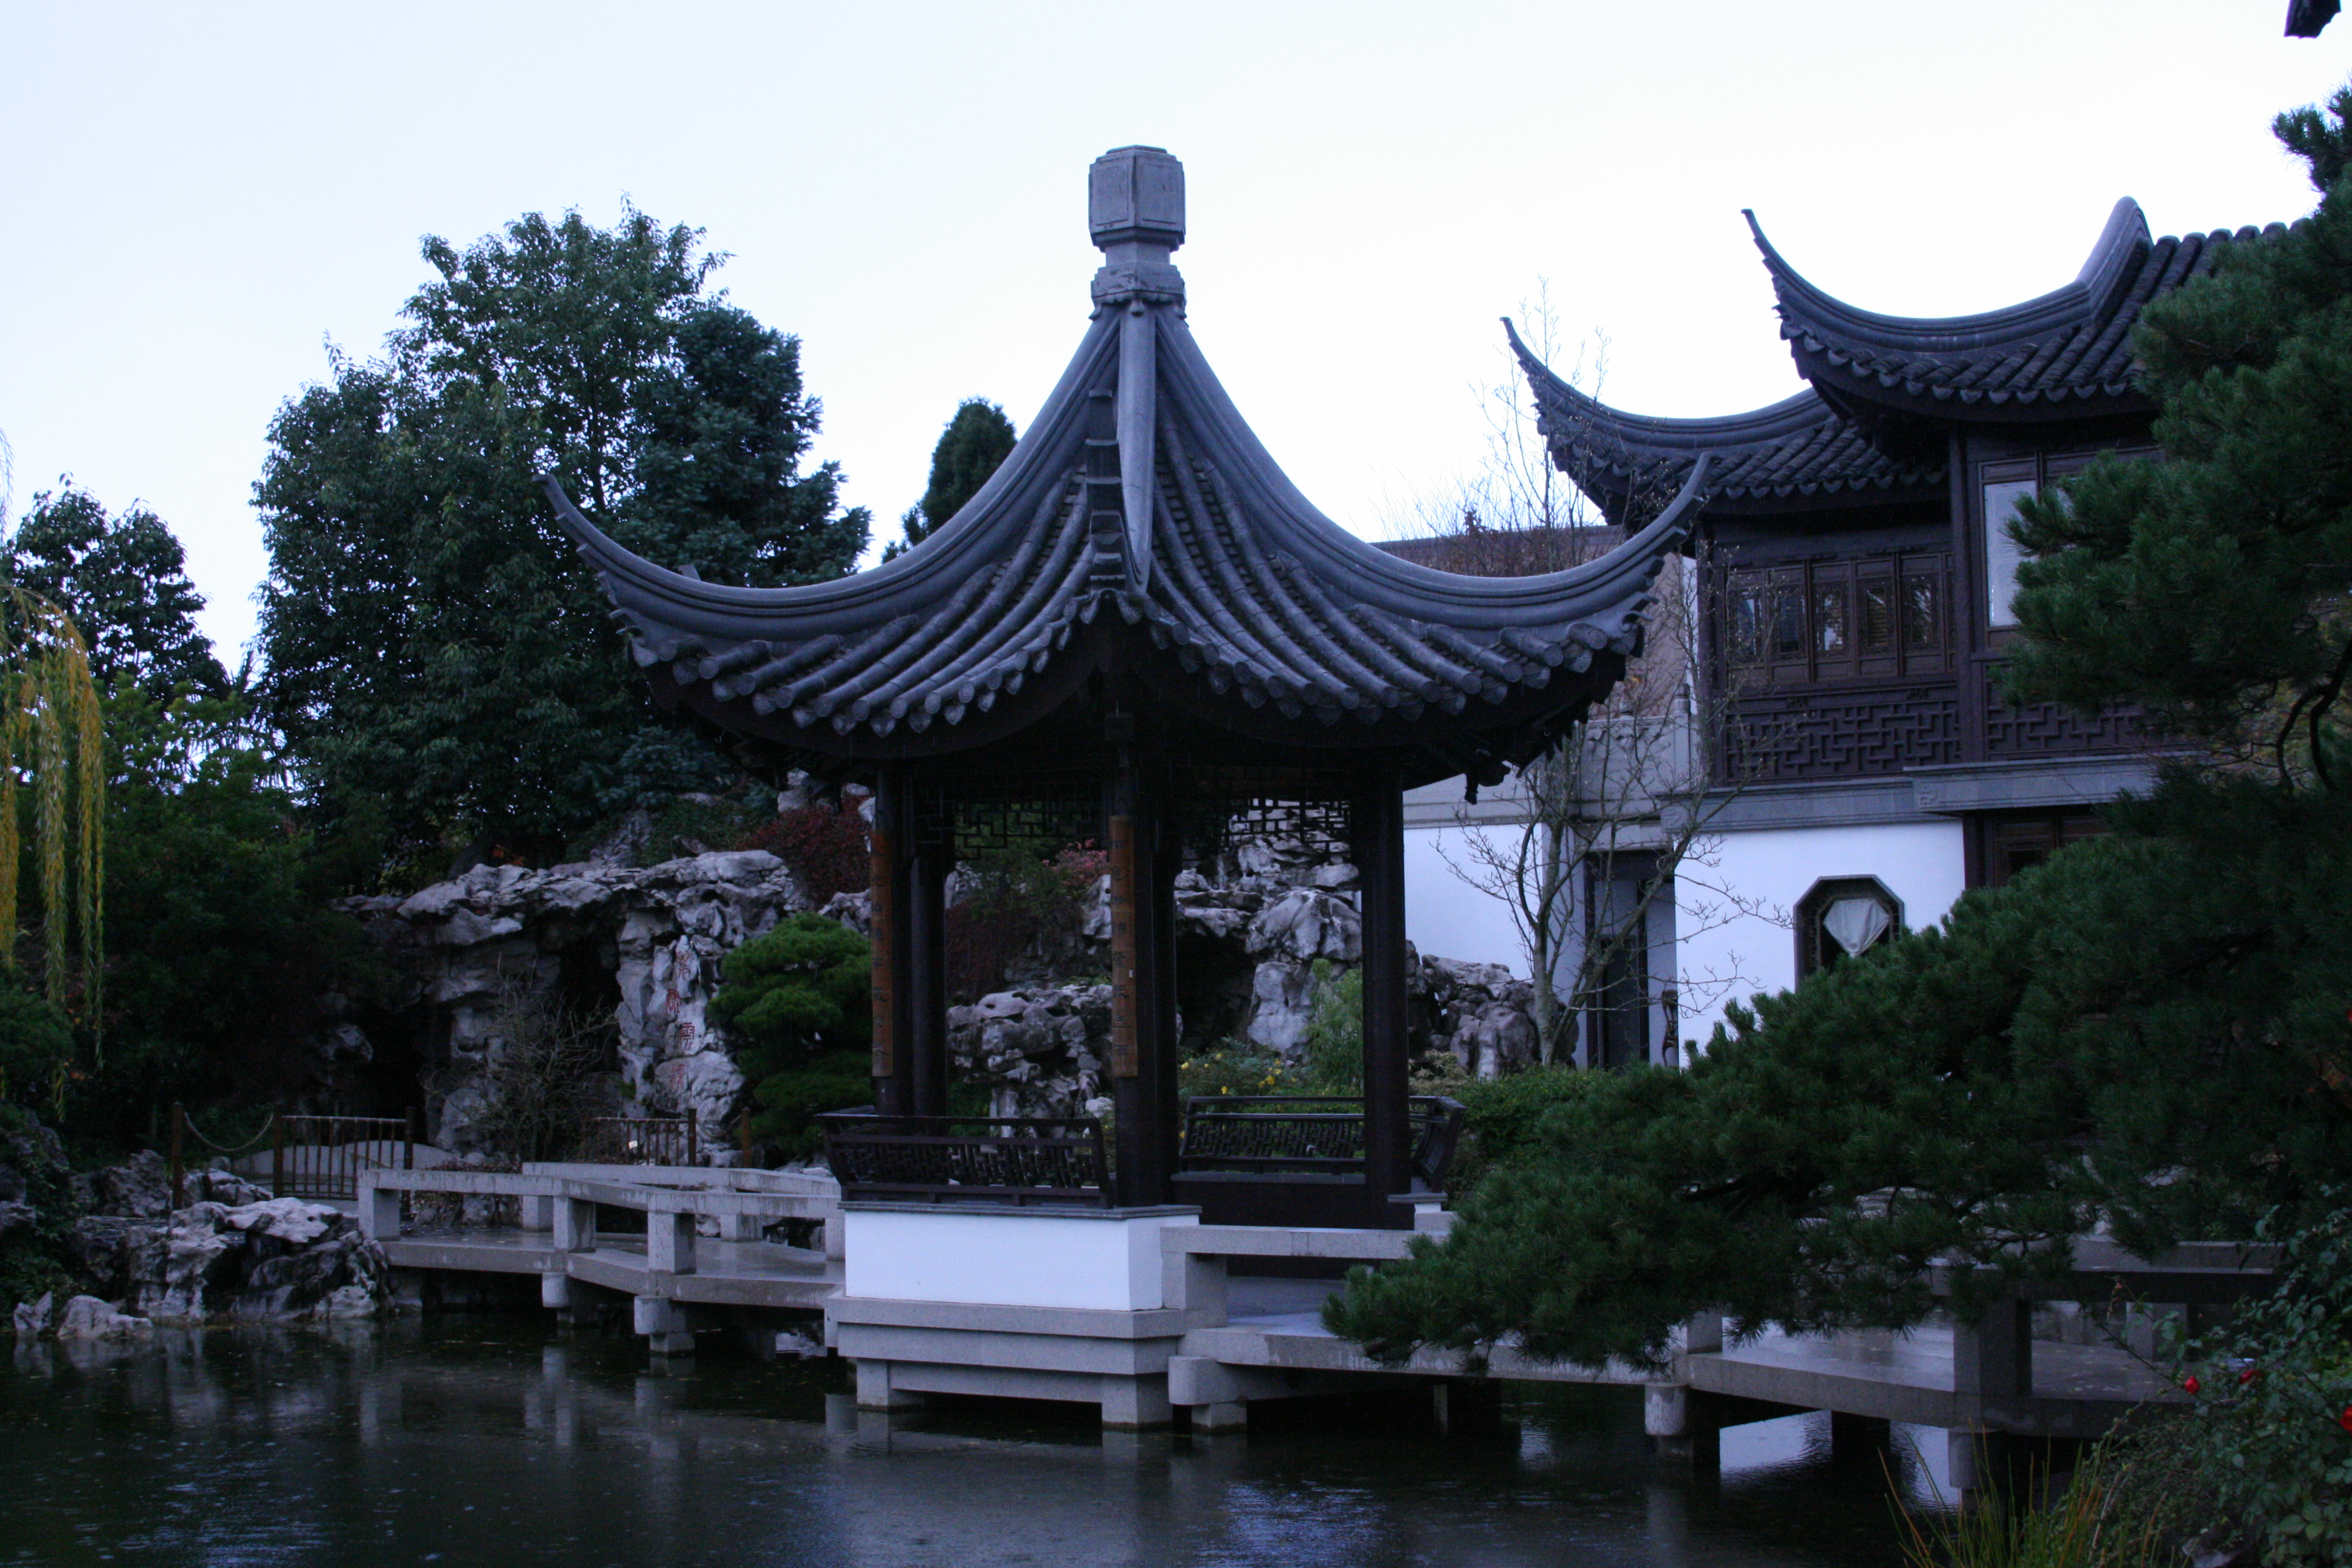 Gazebo and Pond in Chinese Garden